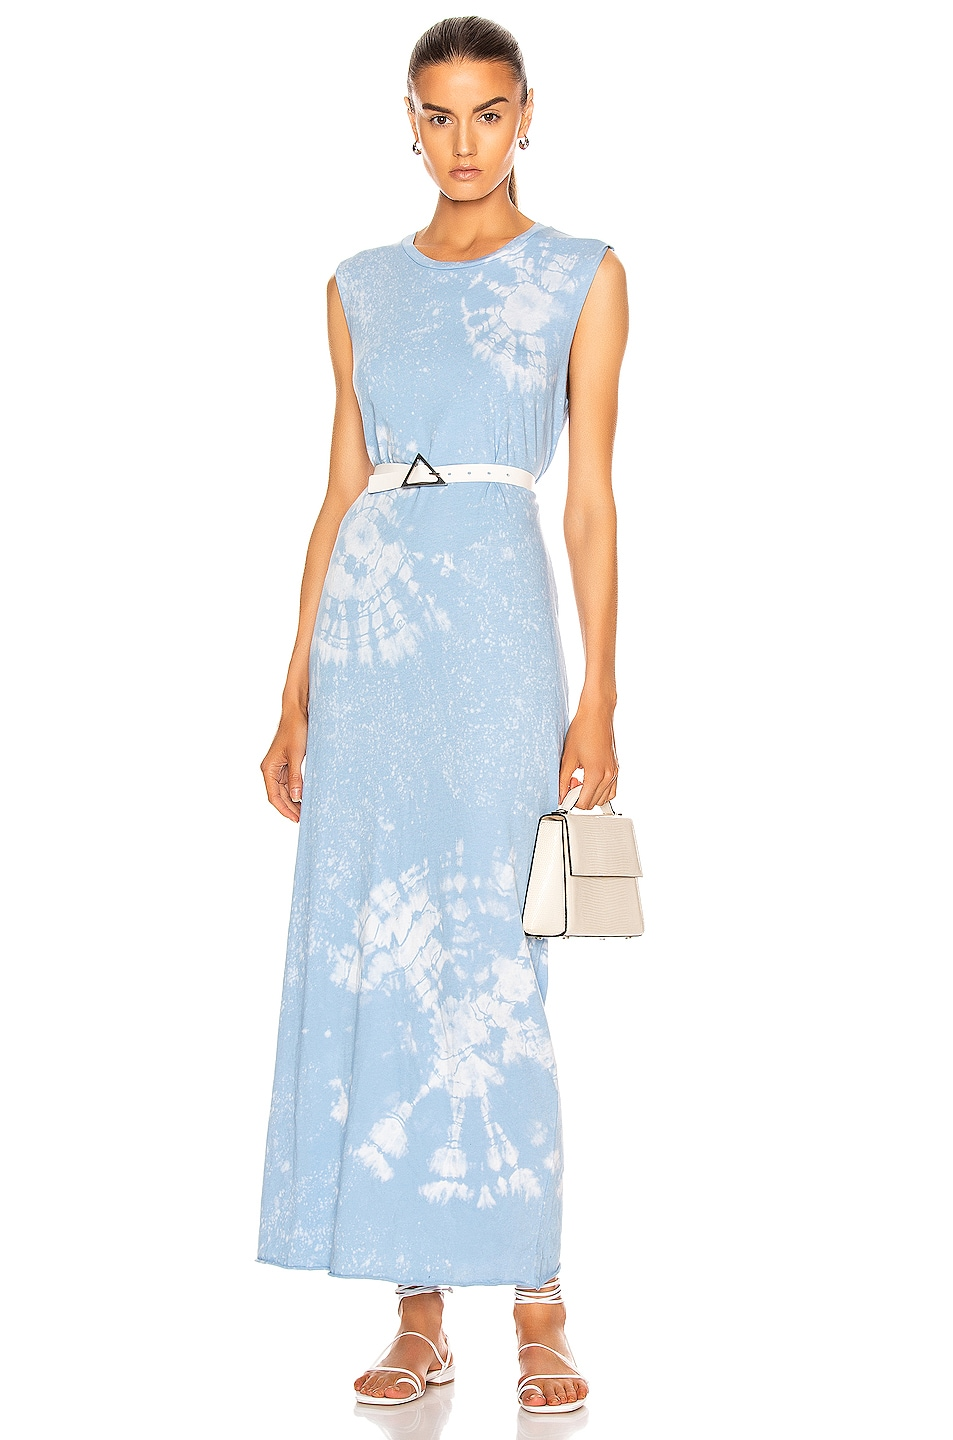 Image 1 of Raquel Allegra Muscle Maxi Dress in Blue Constellation